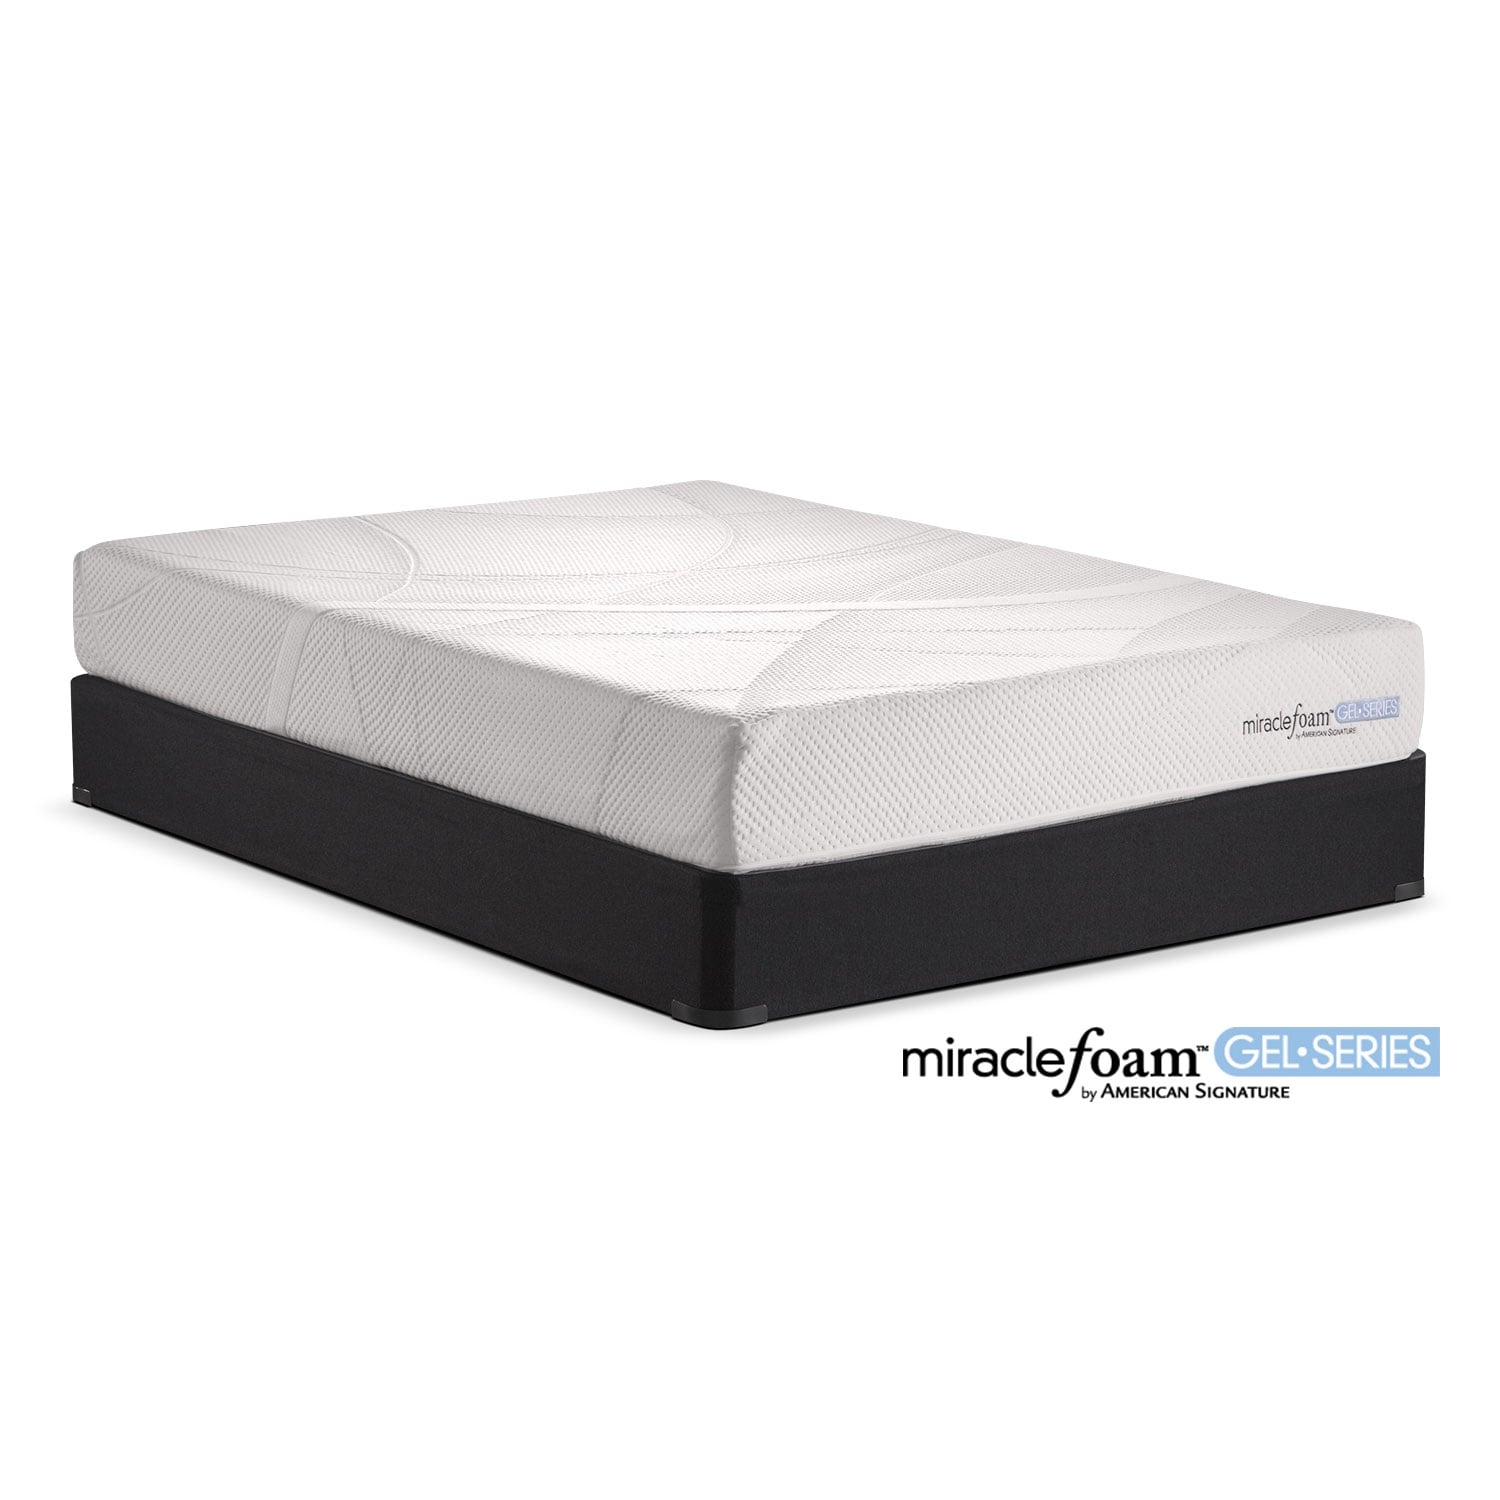 Mattresses and Bedding - Rejuvenate II Firm Full Mattress and Foundation Set